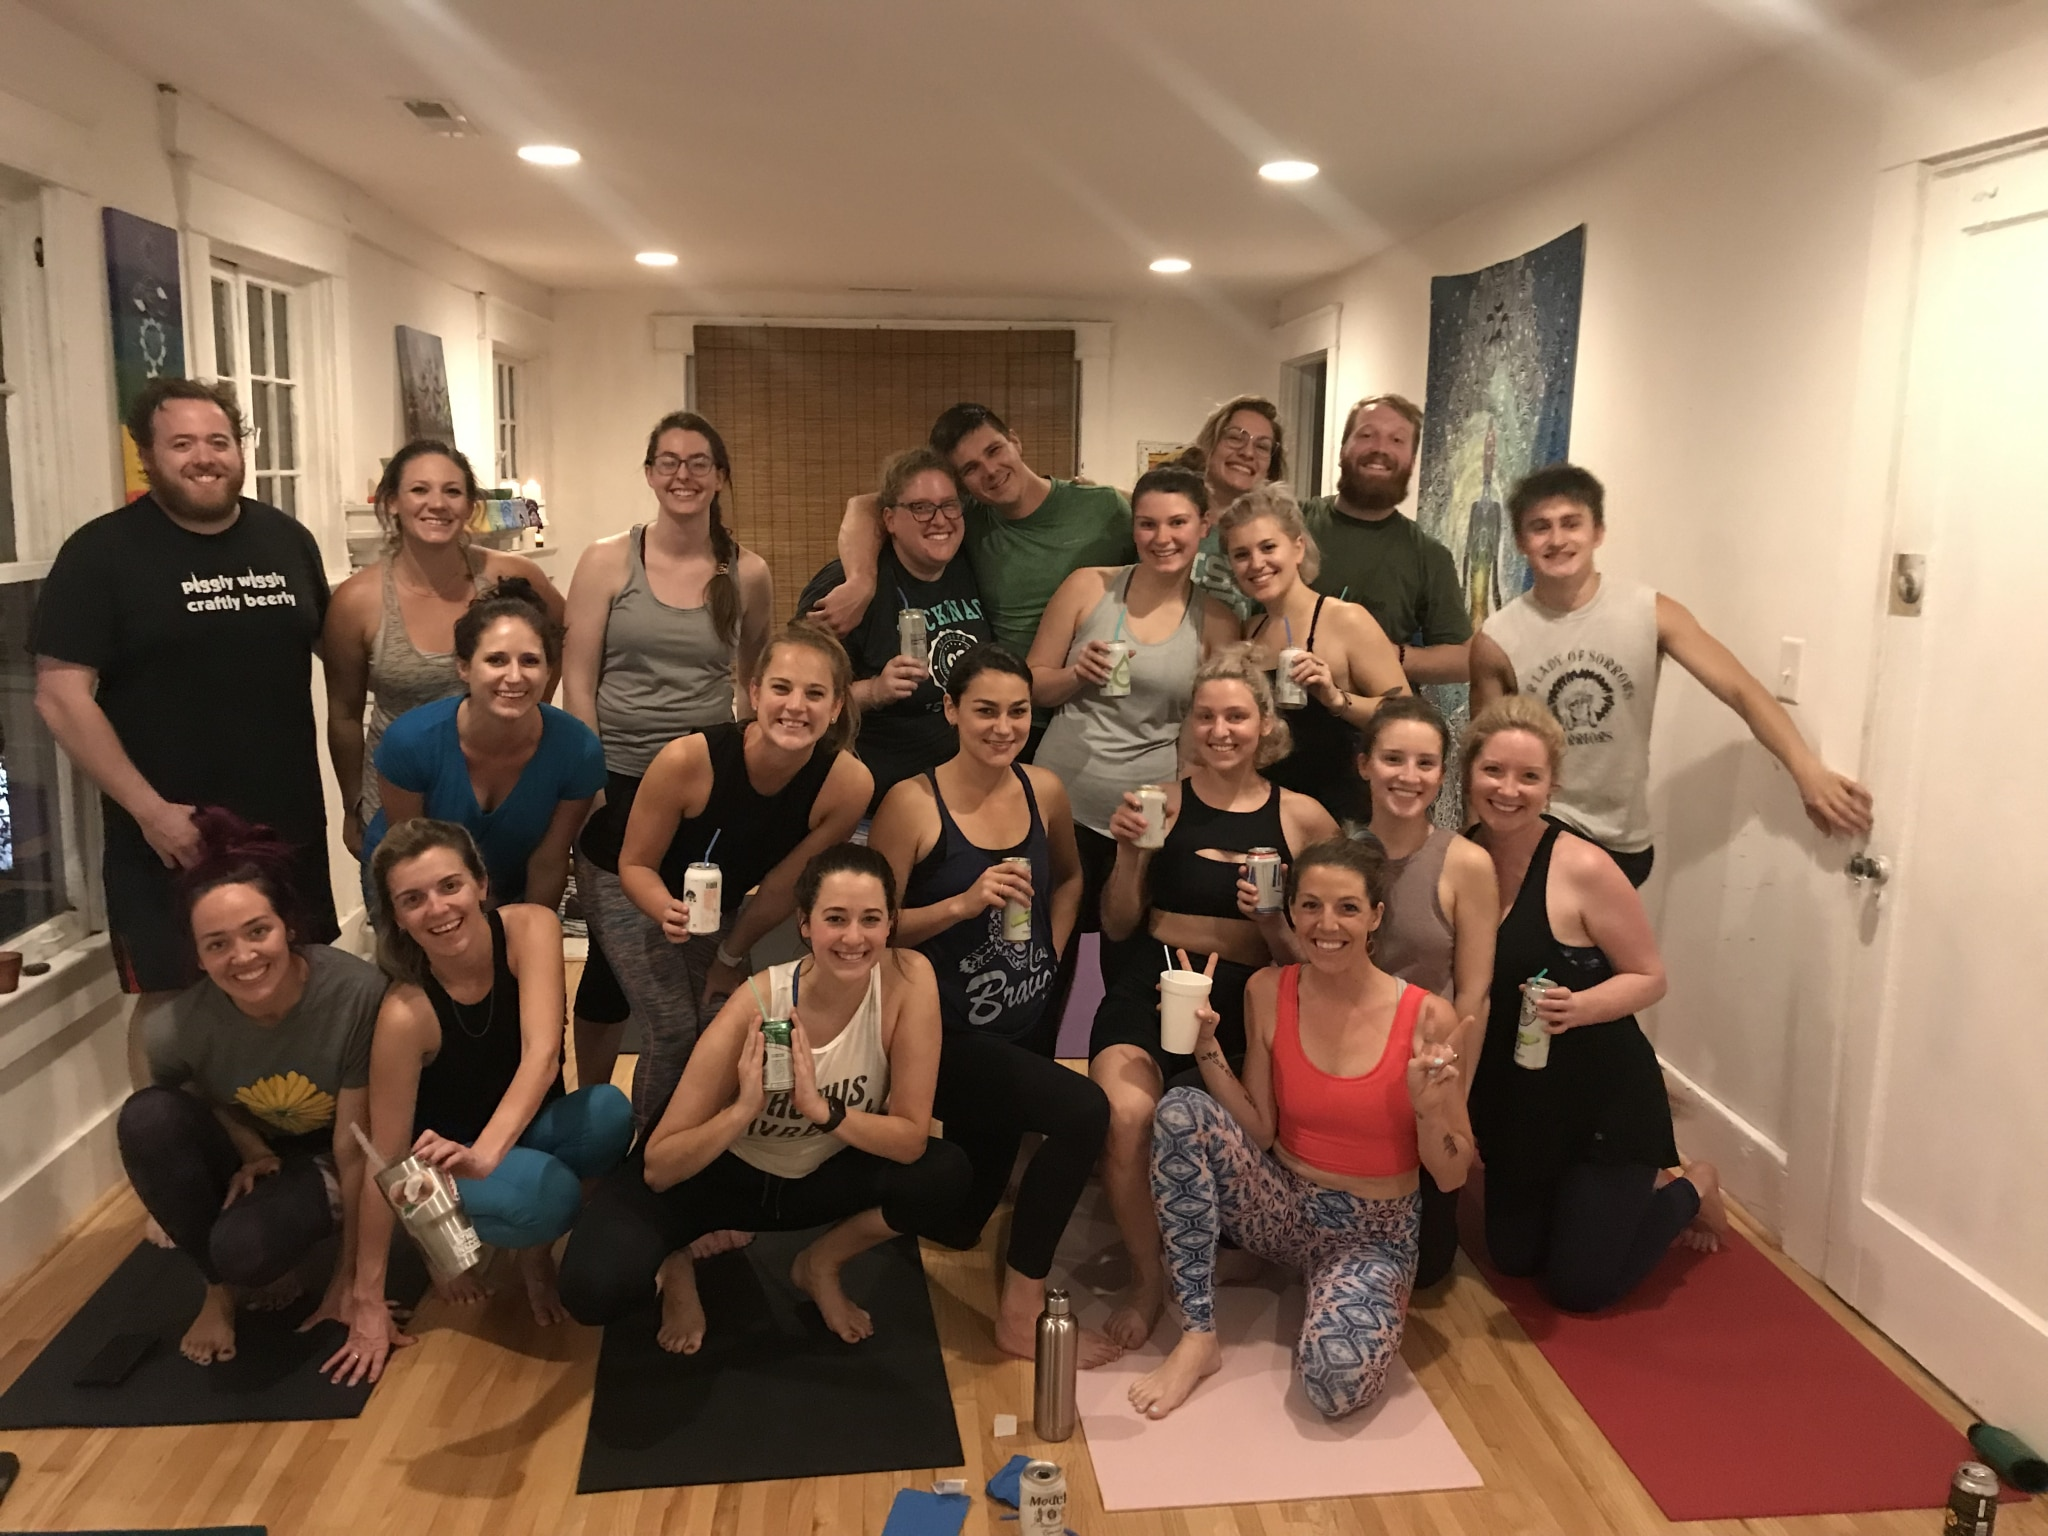 Beer Yoga In Birmingham It S A Thing Bham Now